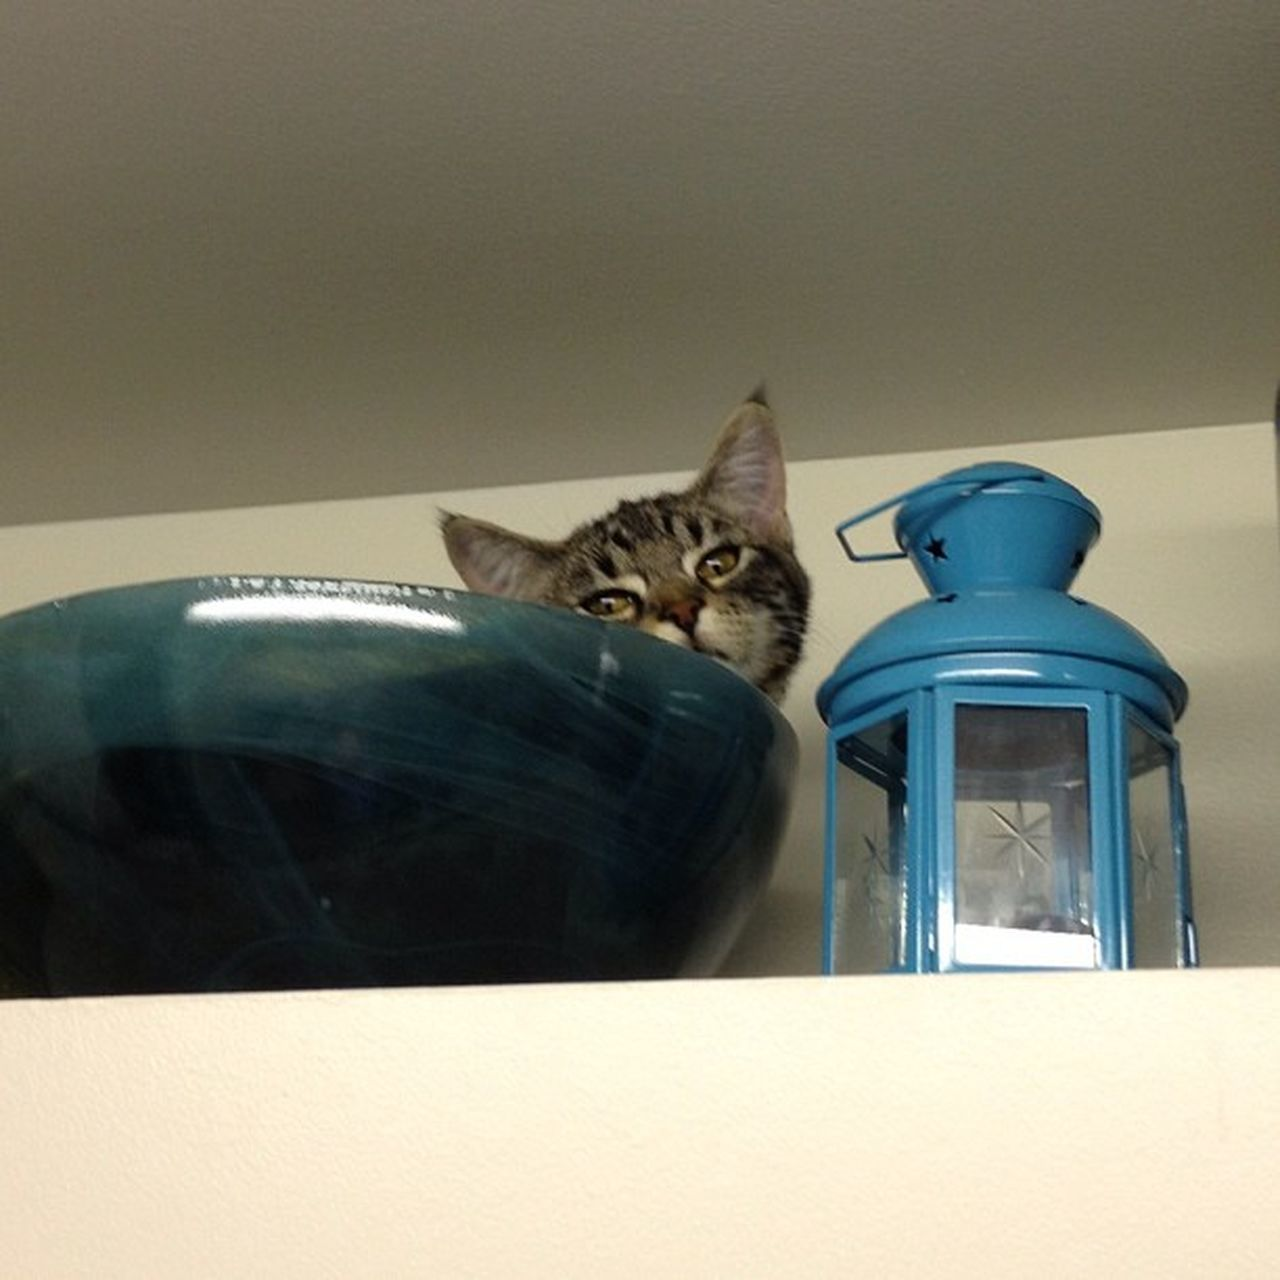 Cat In Bowl On Cabinet